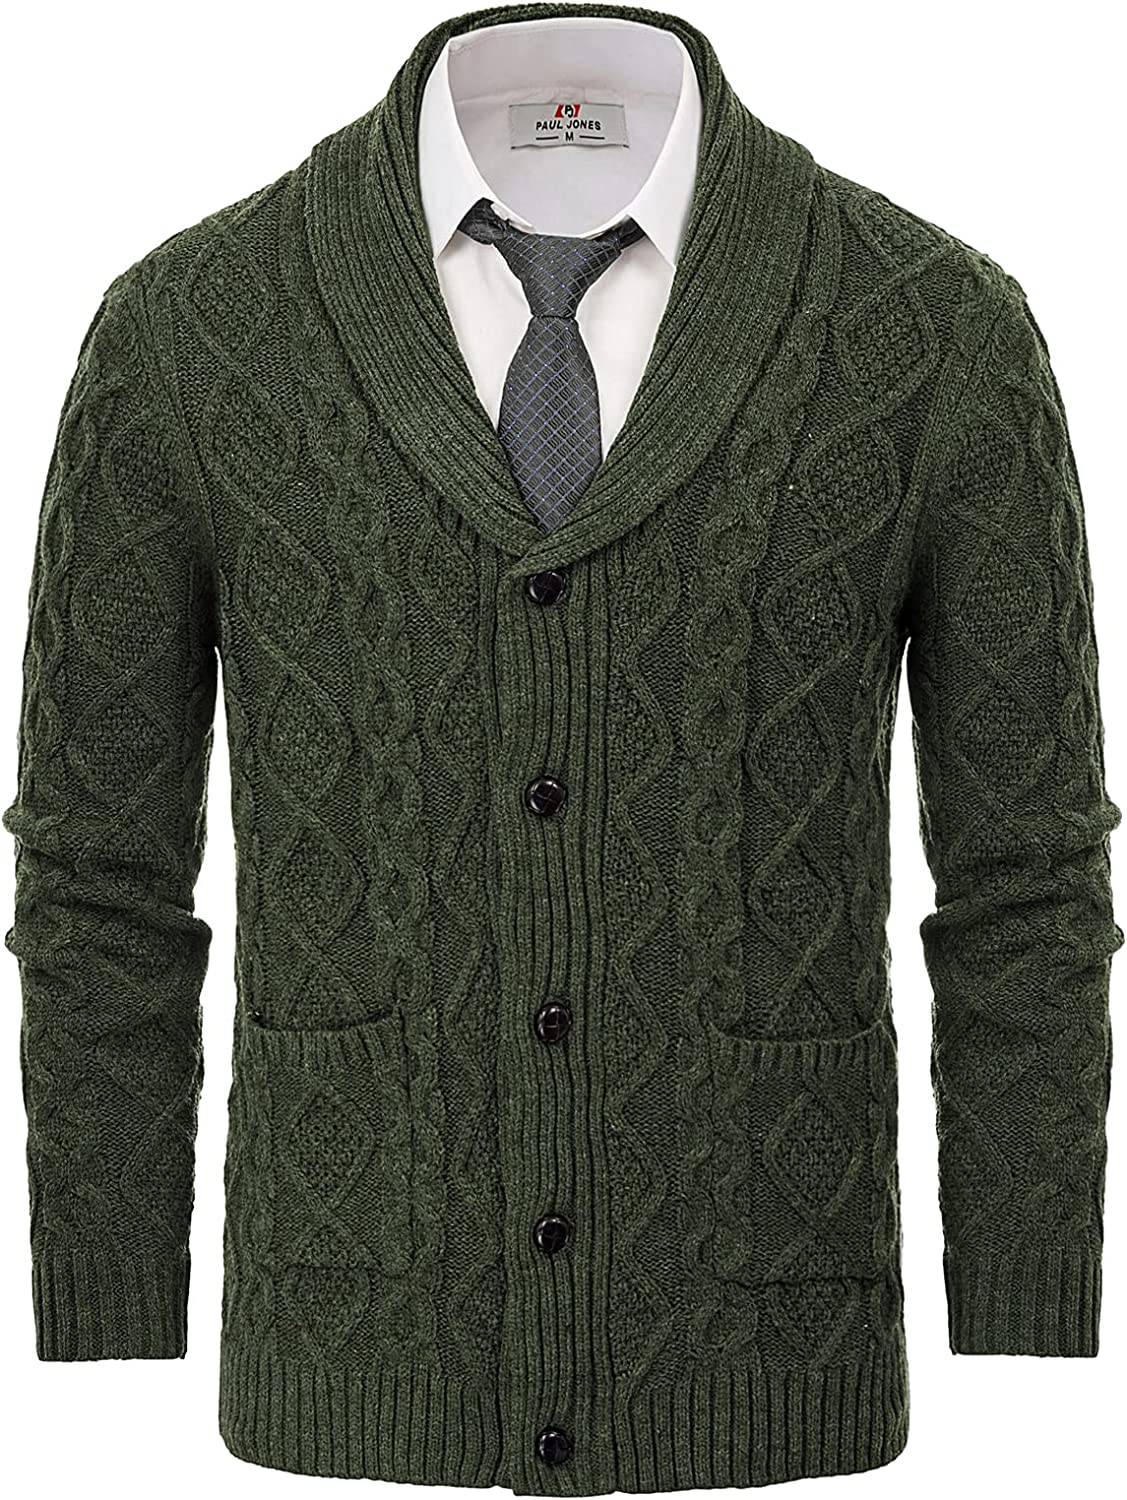 Mens Casual Shawl Collar Cardigan Button Down Thick Knit Sweater with Pockets